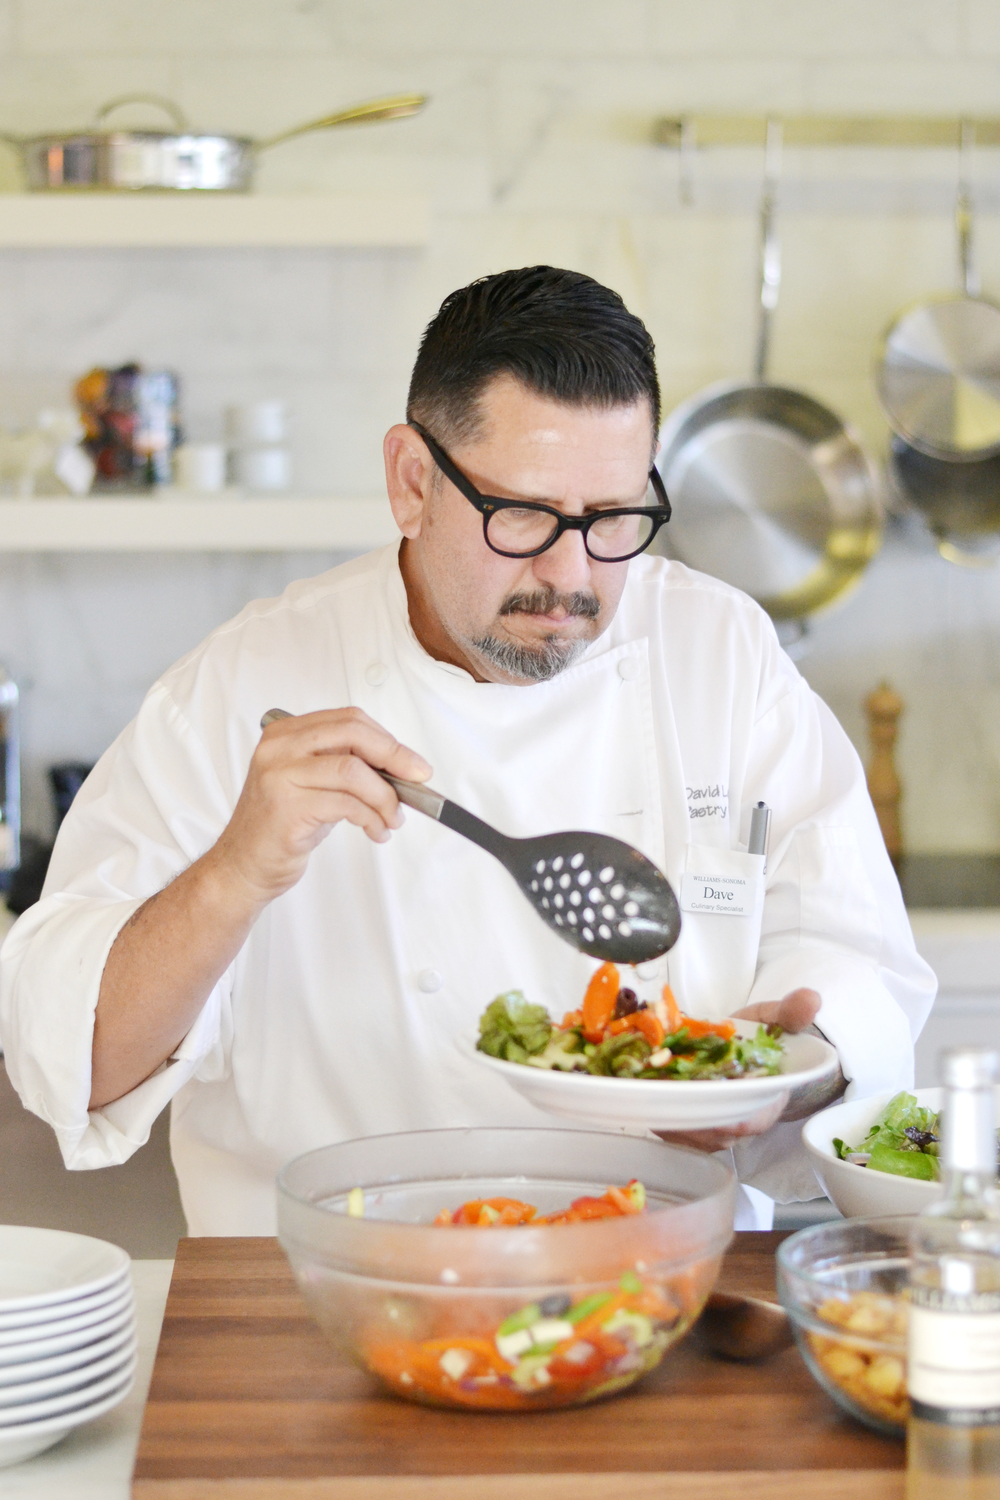 How to make amazing salads from a Williams-Sonoma chef! From asavvylifestyle.com